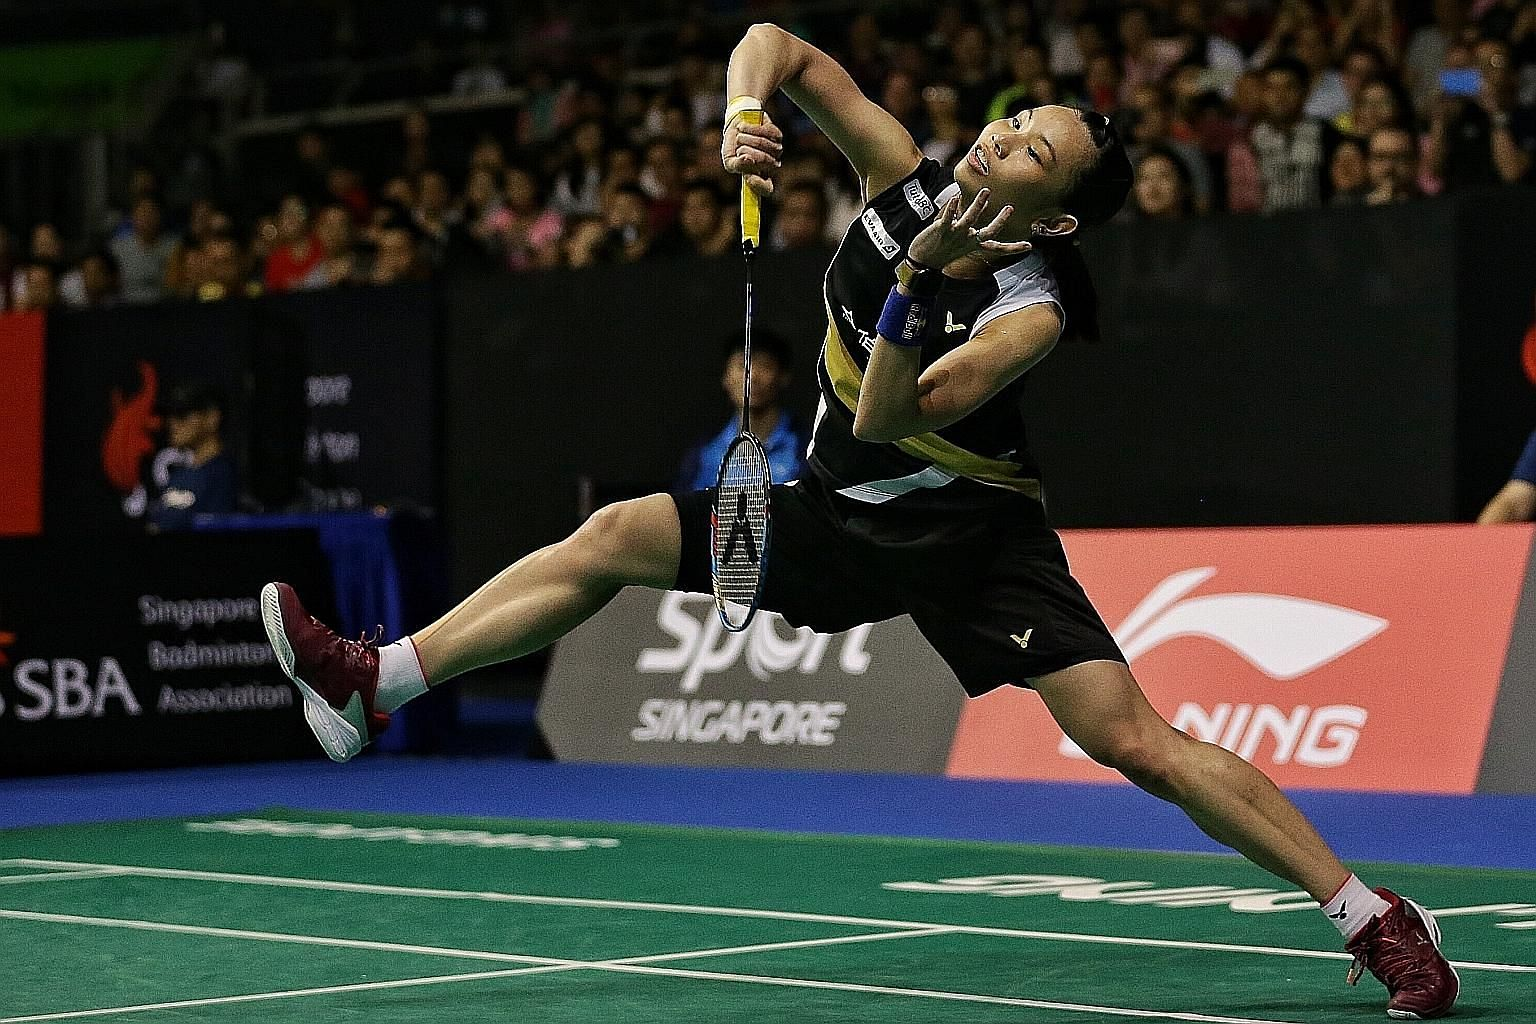 Chinese Taipei's world No. 1 Tai Tzu-ying smashing at Japan's Akane Yamaguchi in their semi-final at the Singapore Indoor Stadium yesterday. She has won their last three meetings.